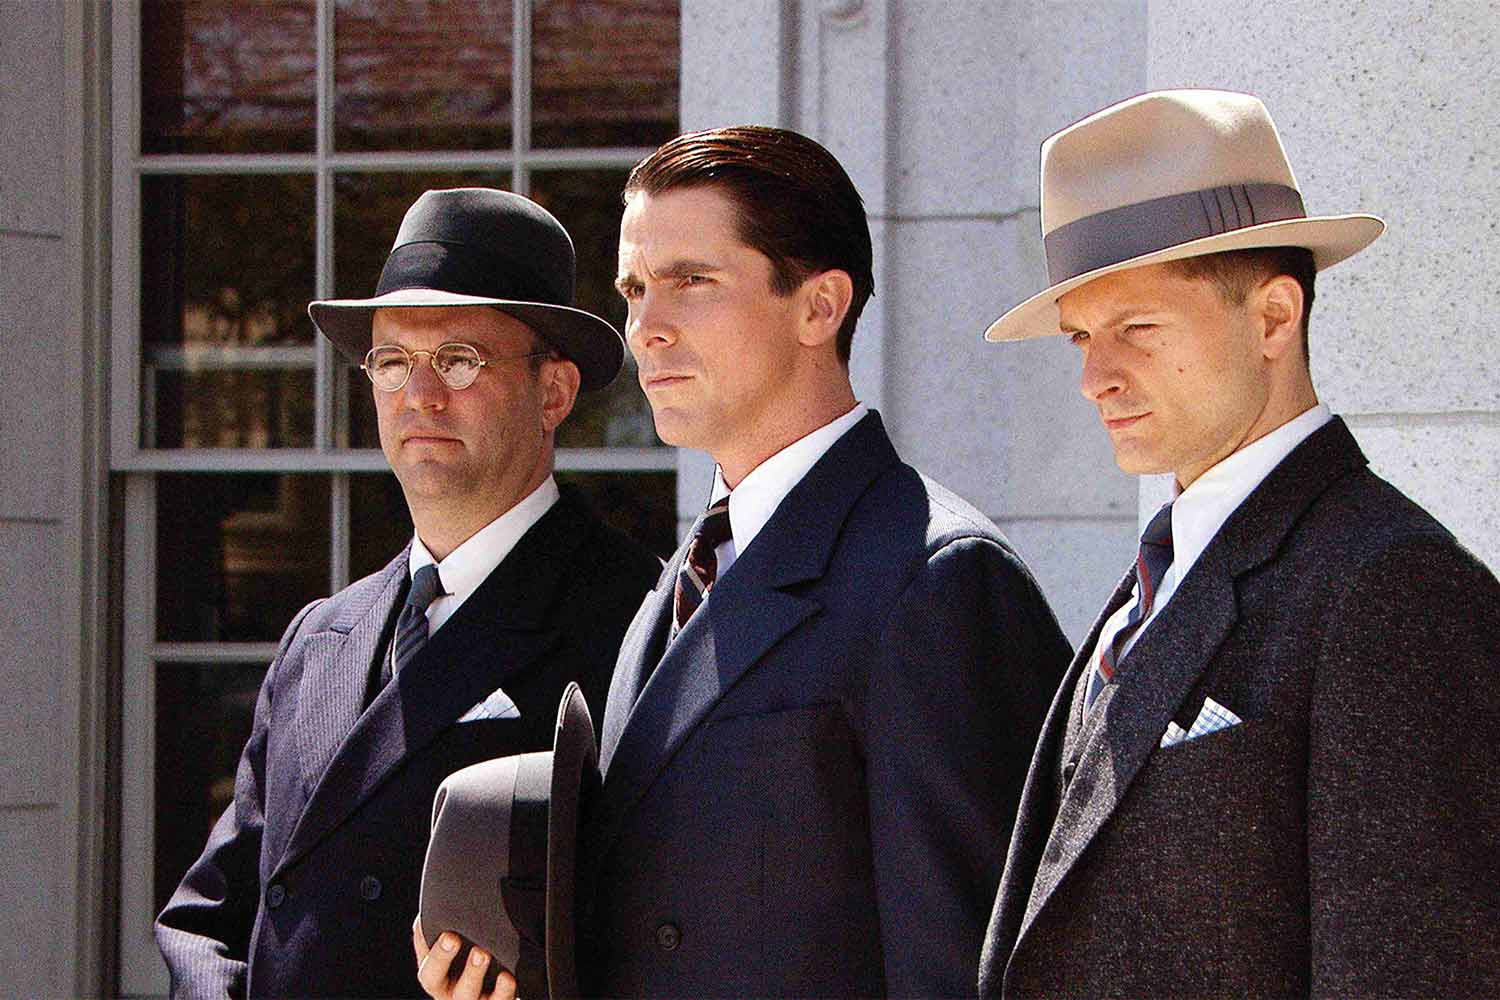 """Madison in the movies: """"Public Enemies,"""" 9 years later 